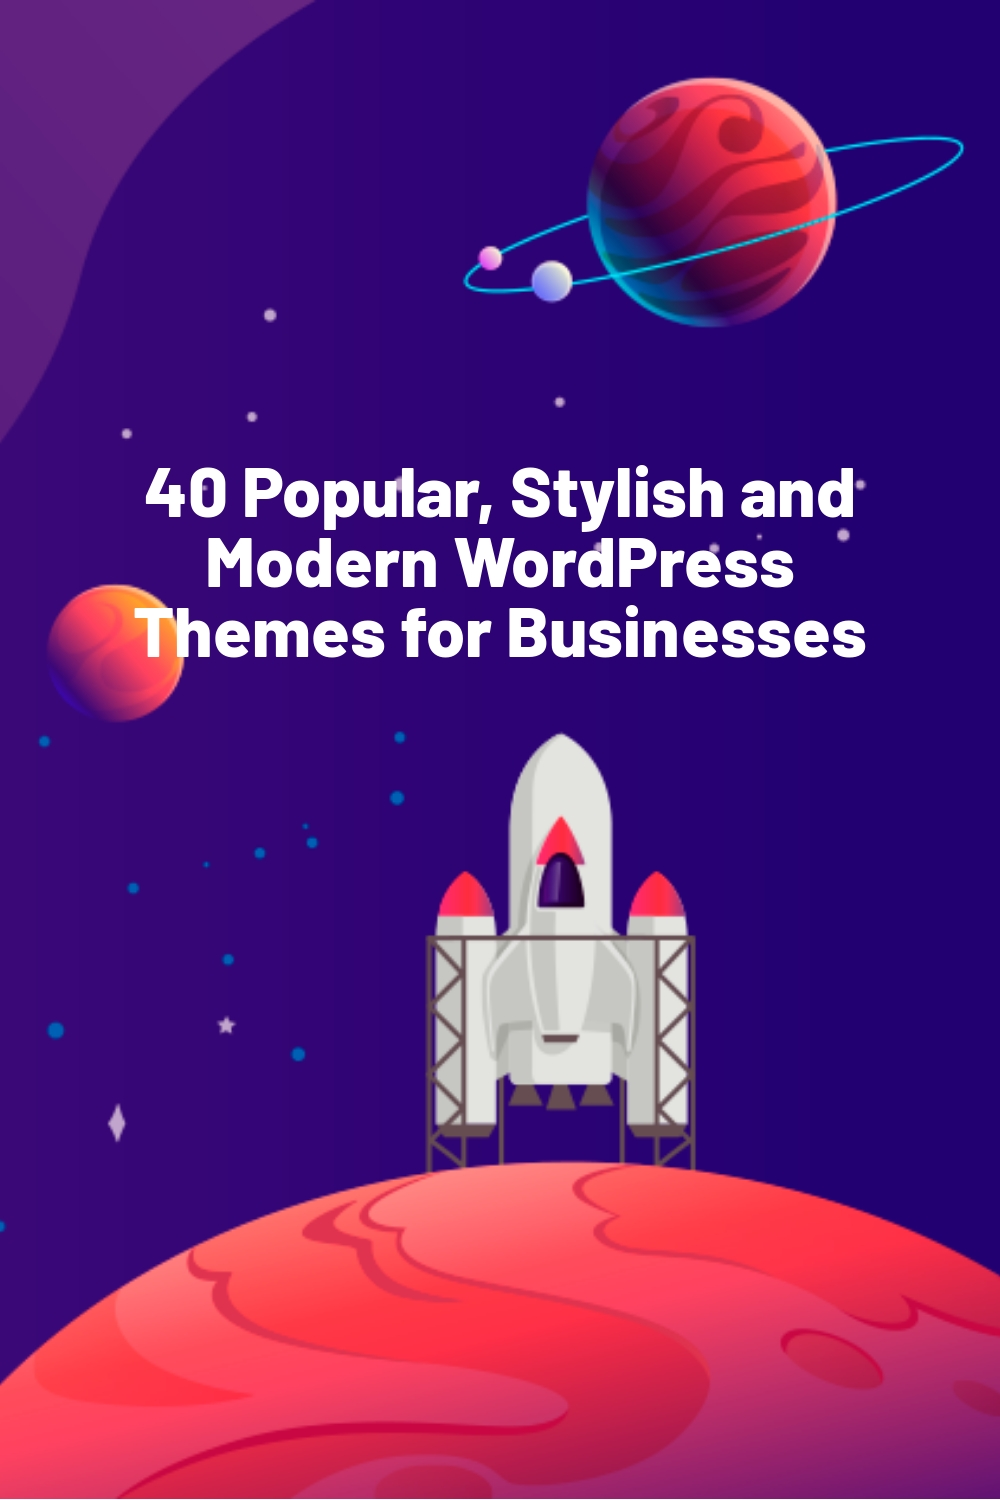 40 Popular, Stylish and Modern WordPress Themes for Businesses